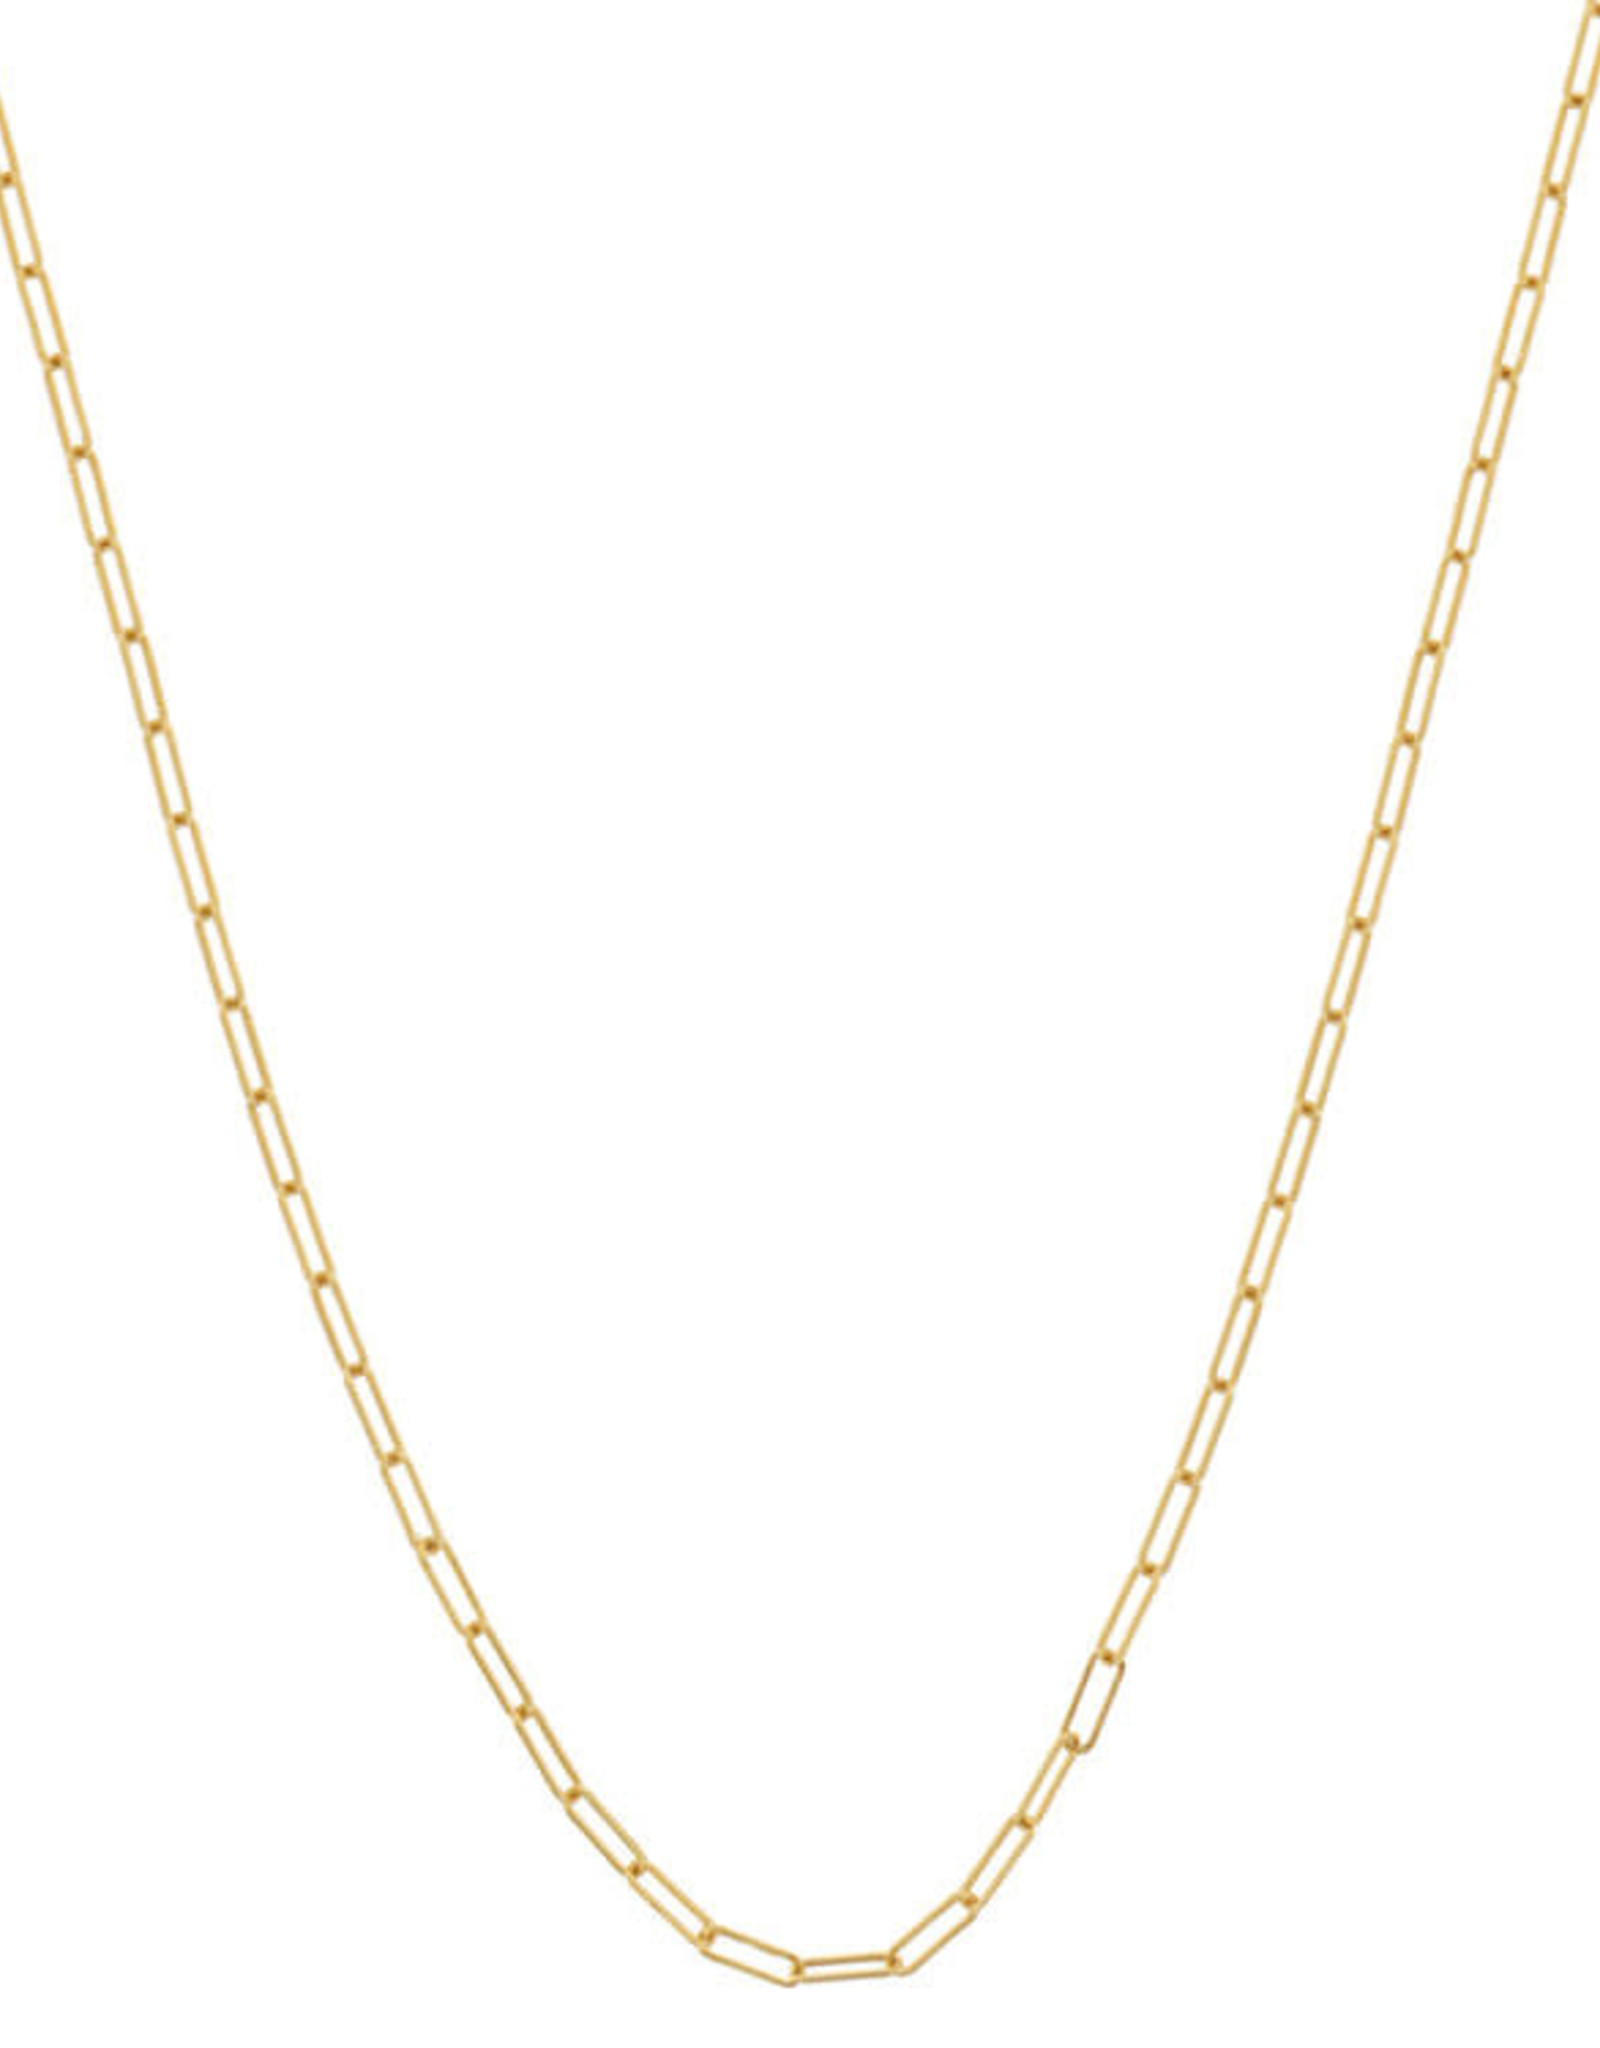 Ashley Zhang Jewelry Small Link Chain